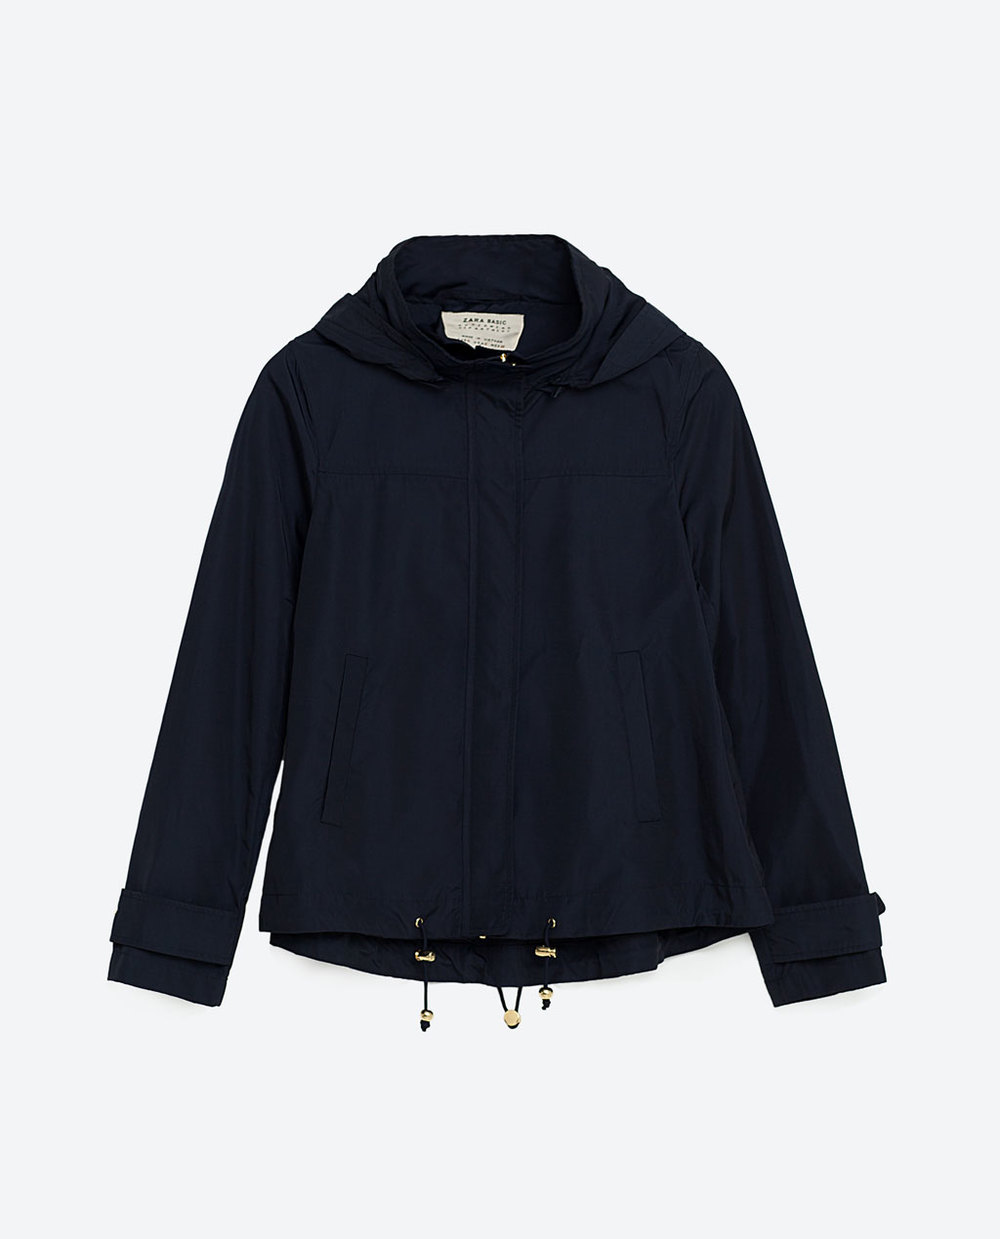 Zara water repellent jacket, from Zara.com